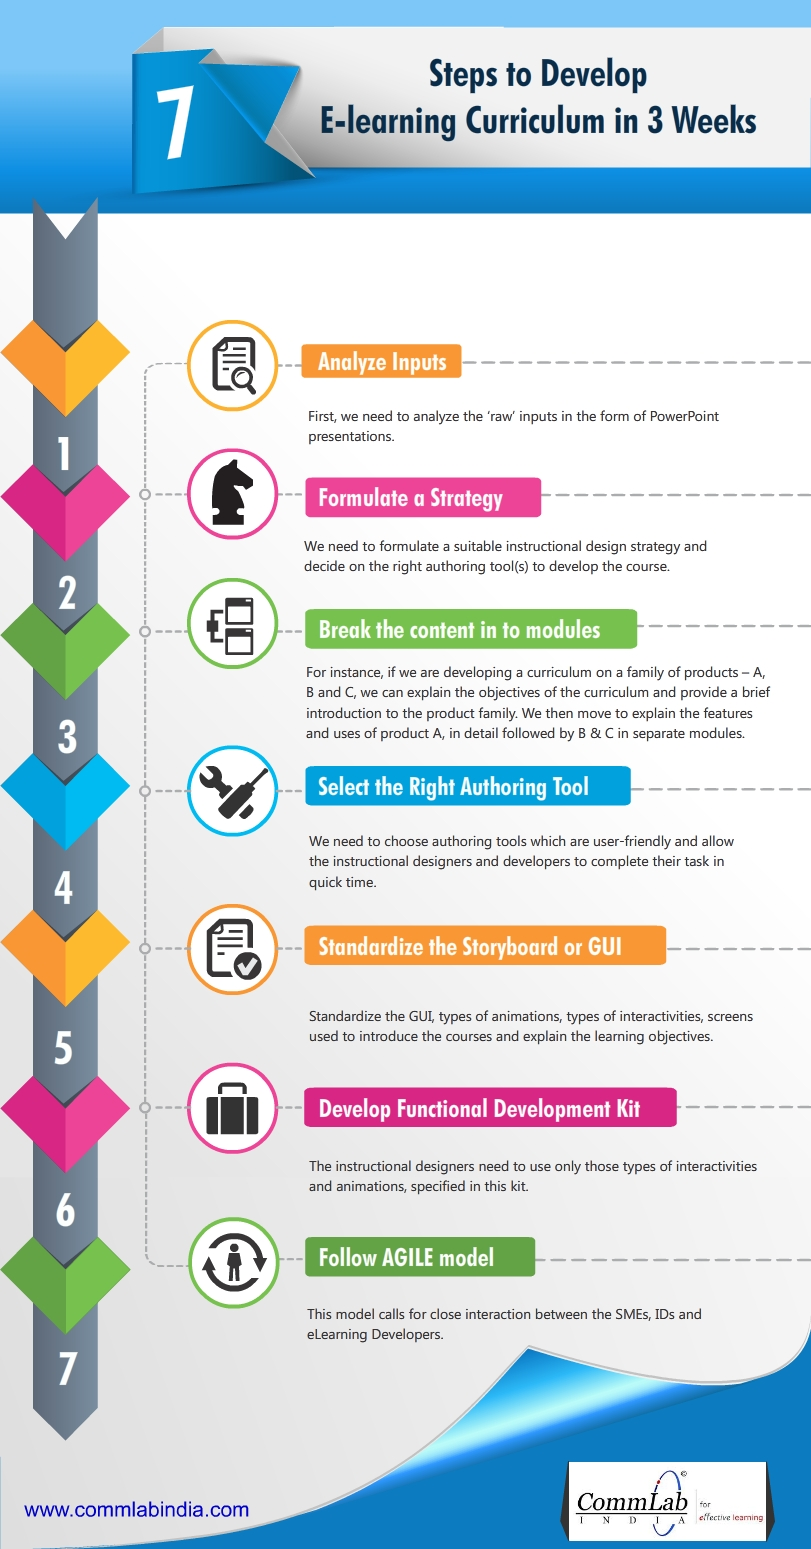 7 Steps to Develop An E-learning Curriculum in 3 Weeks - An Infographic